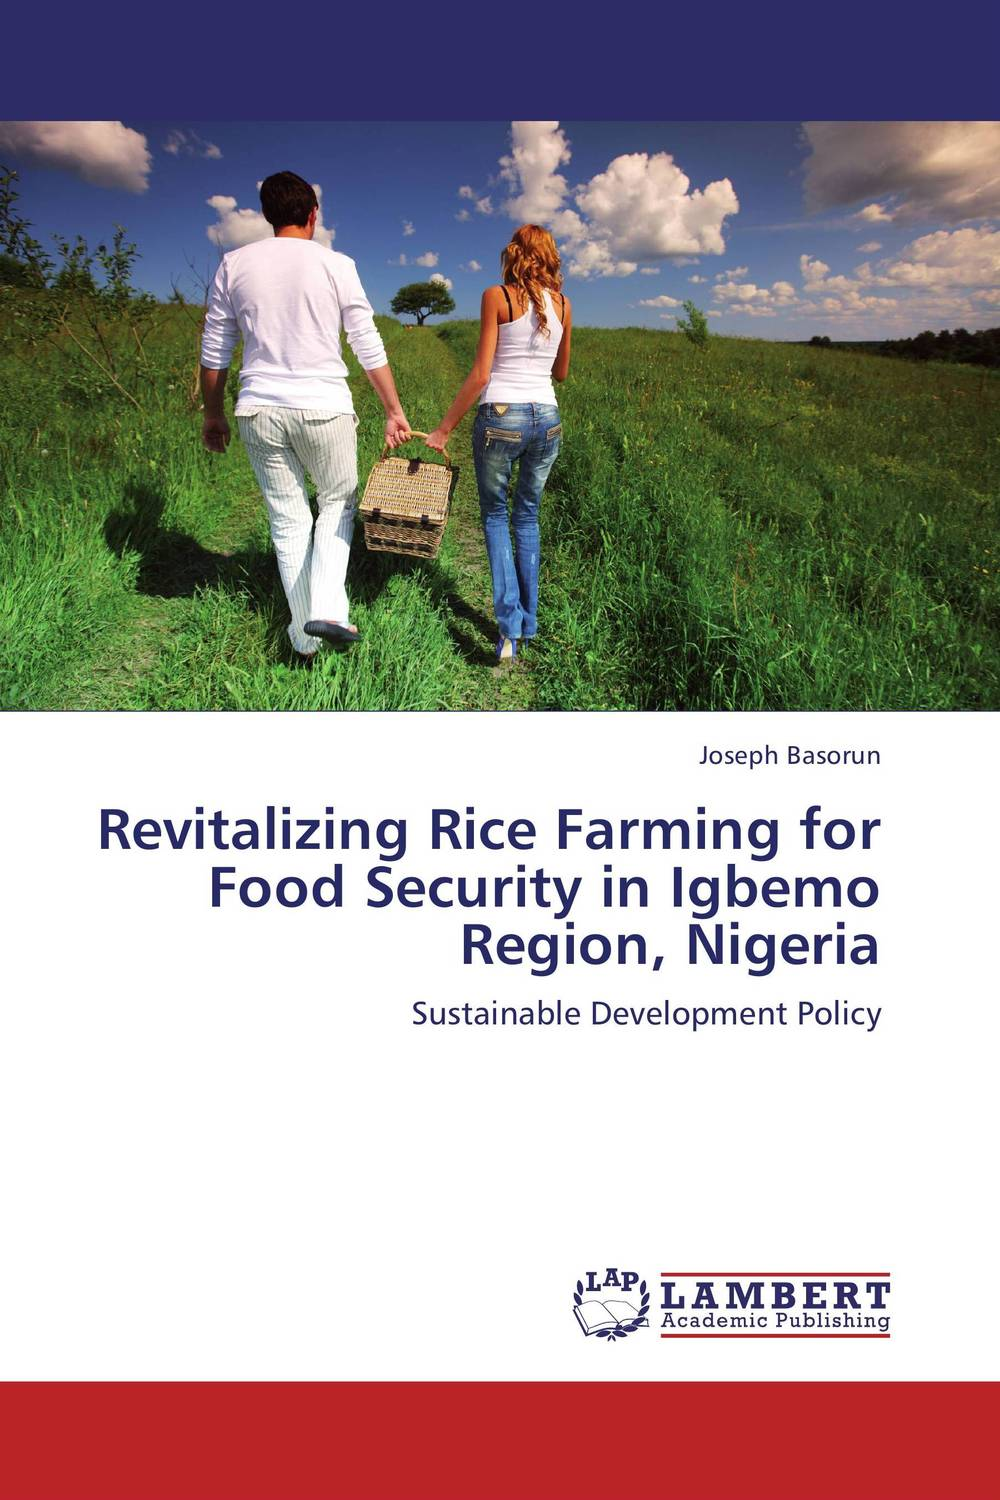 Revitalizing Rice Farming for Food Security in Igbemo Region, Nigeria ноутбук lenovo legion y520 15ikbm 80yy0008rk 80yy0008rk